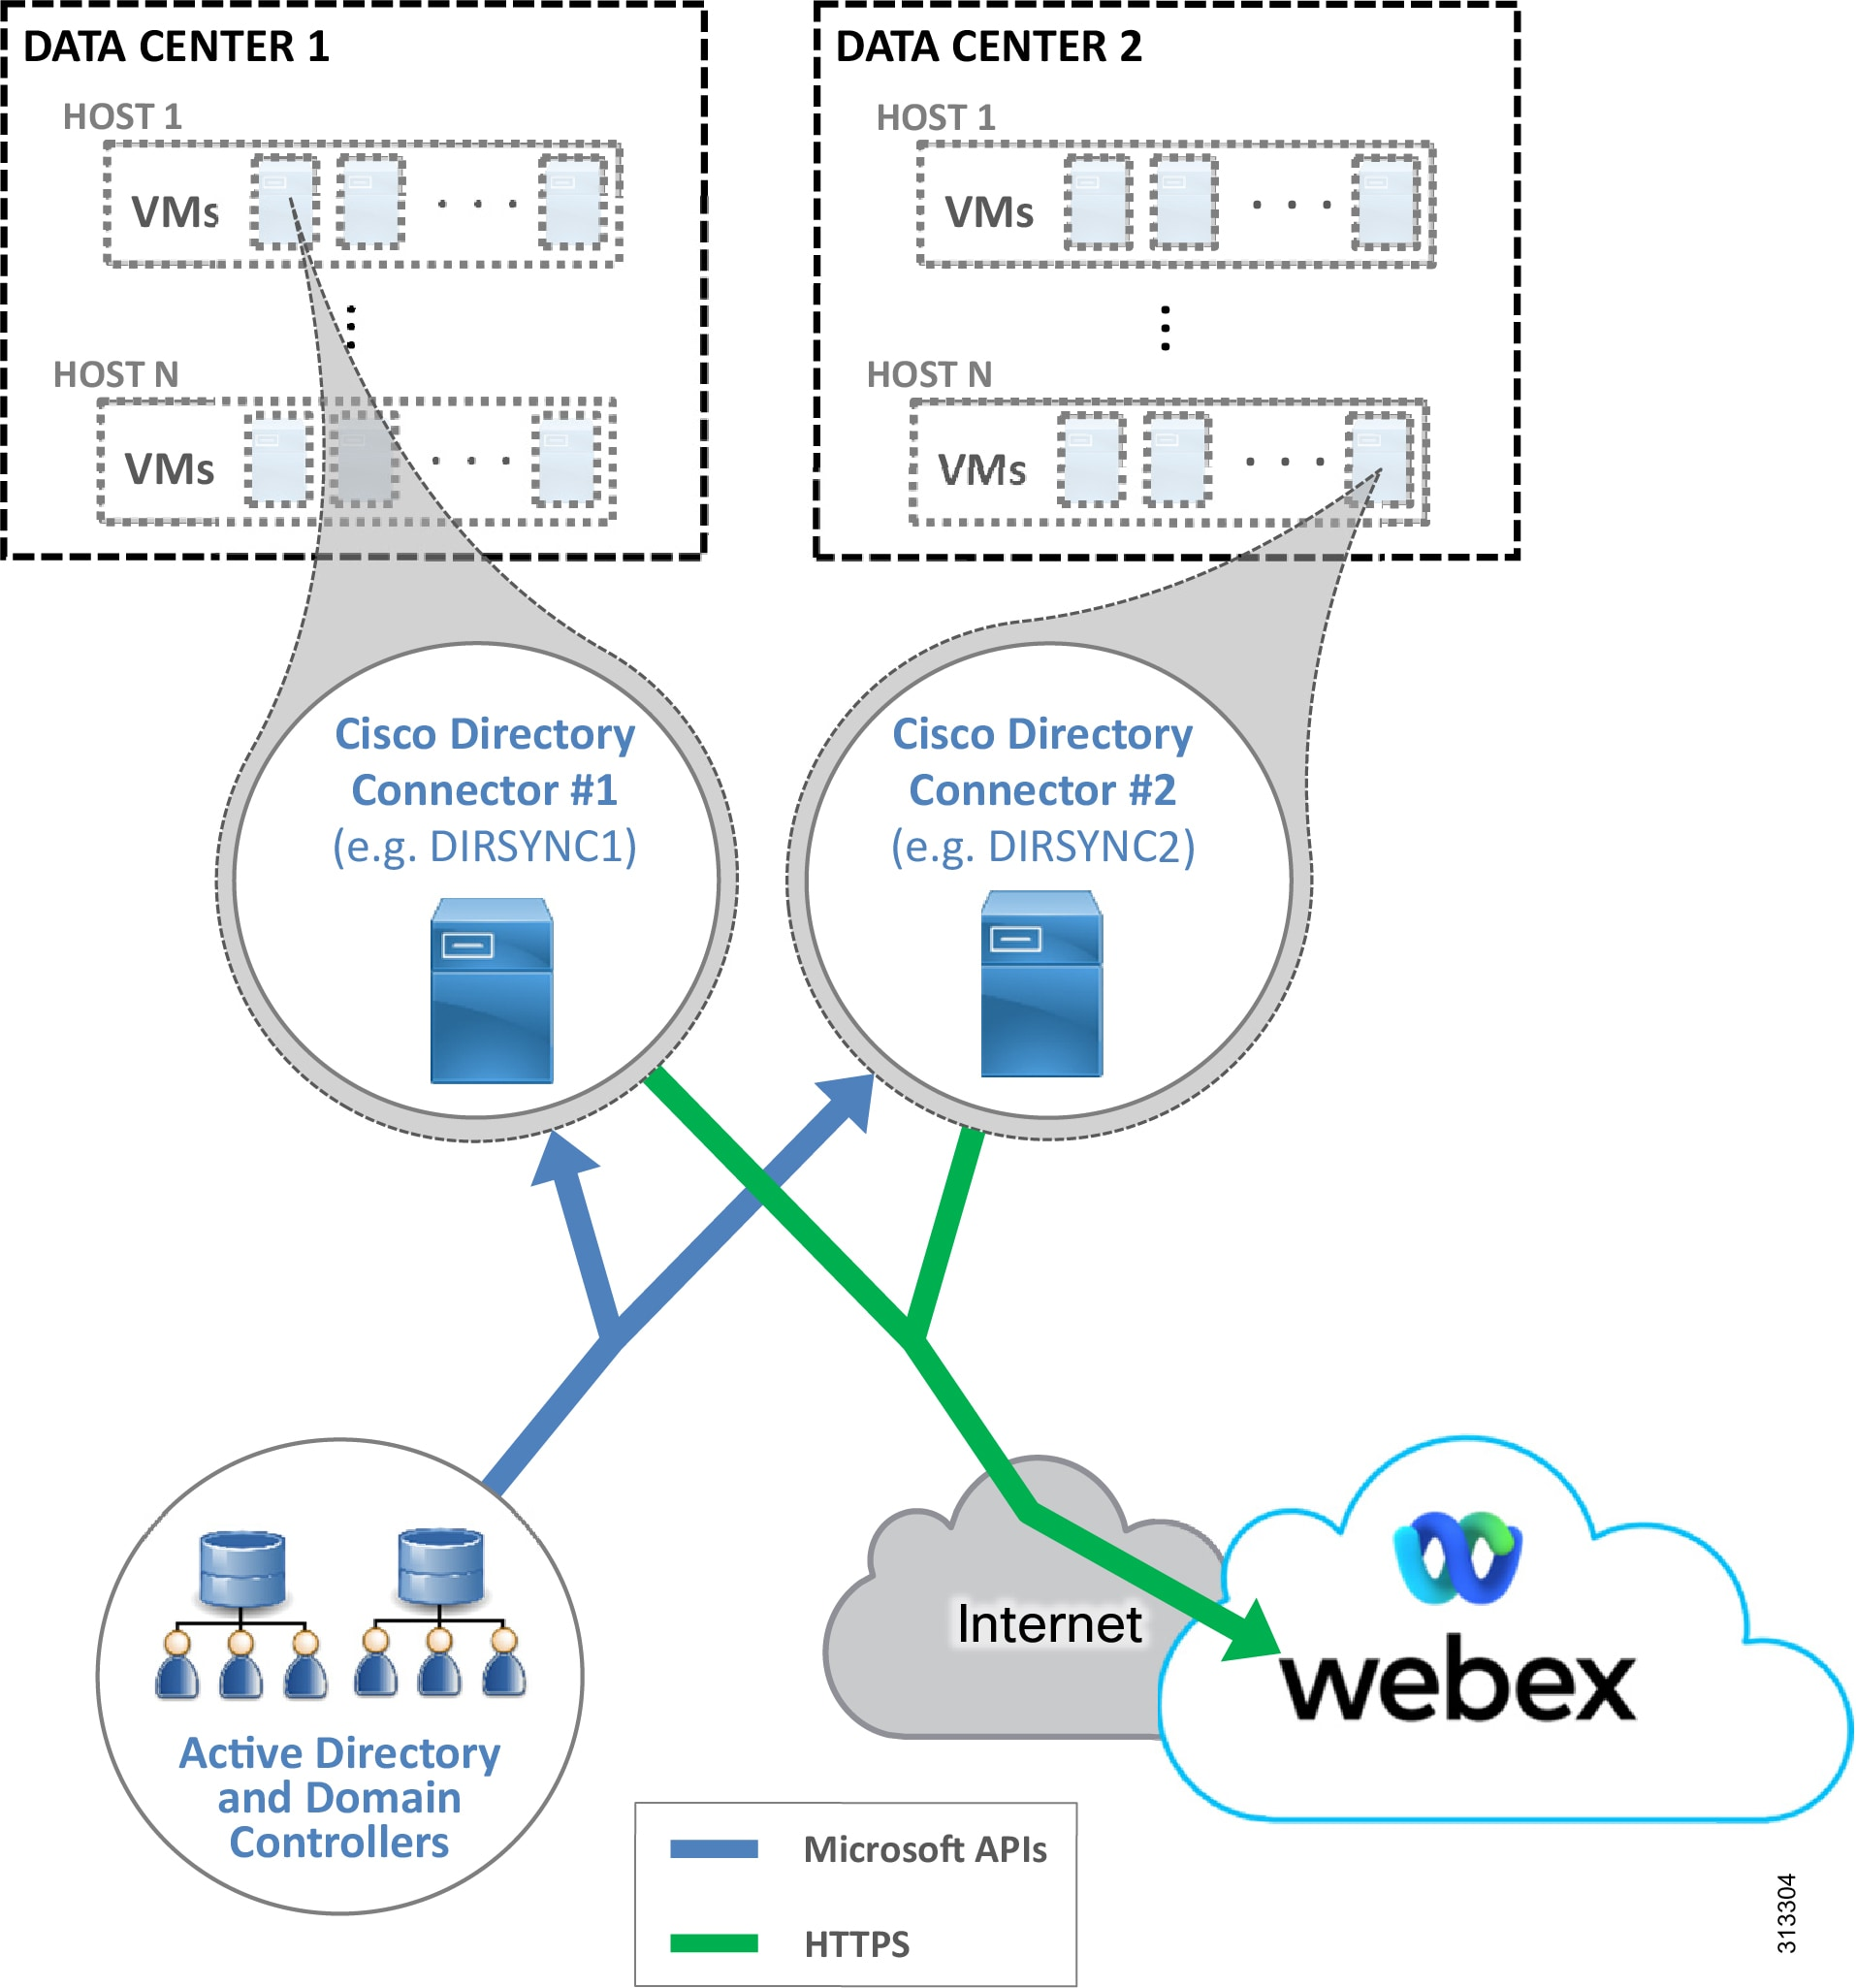 Preferred Architecture for Cisco Webex Hybrid Services, CVD - Cisco